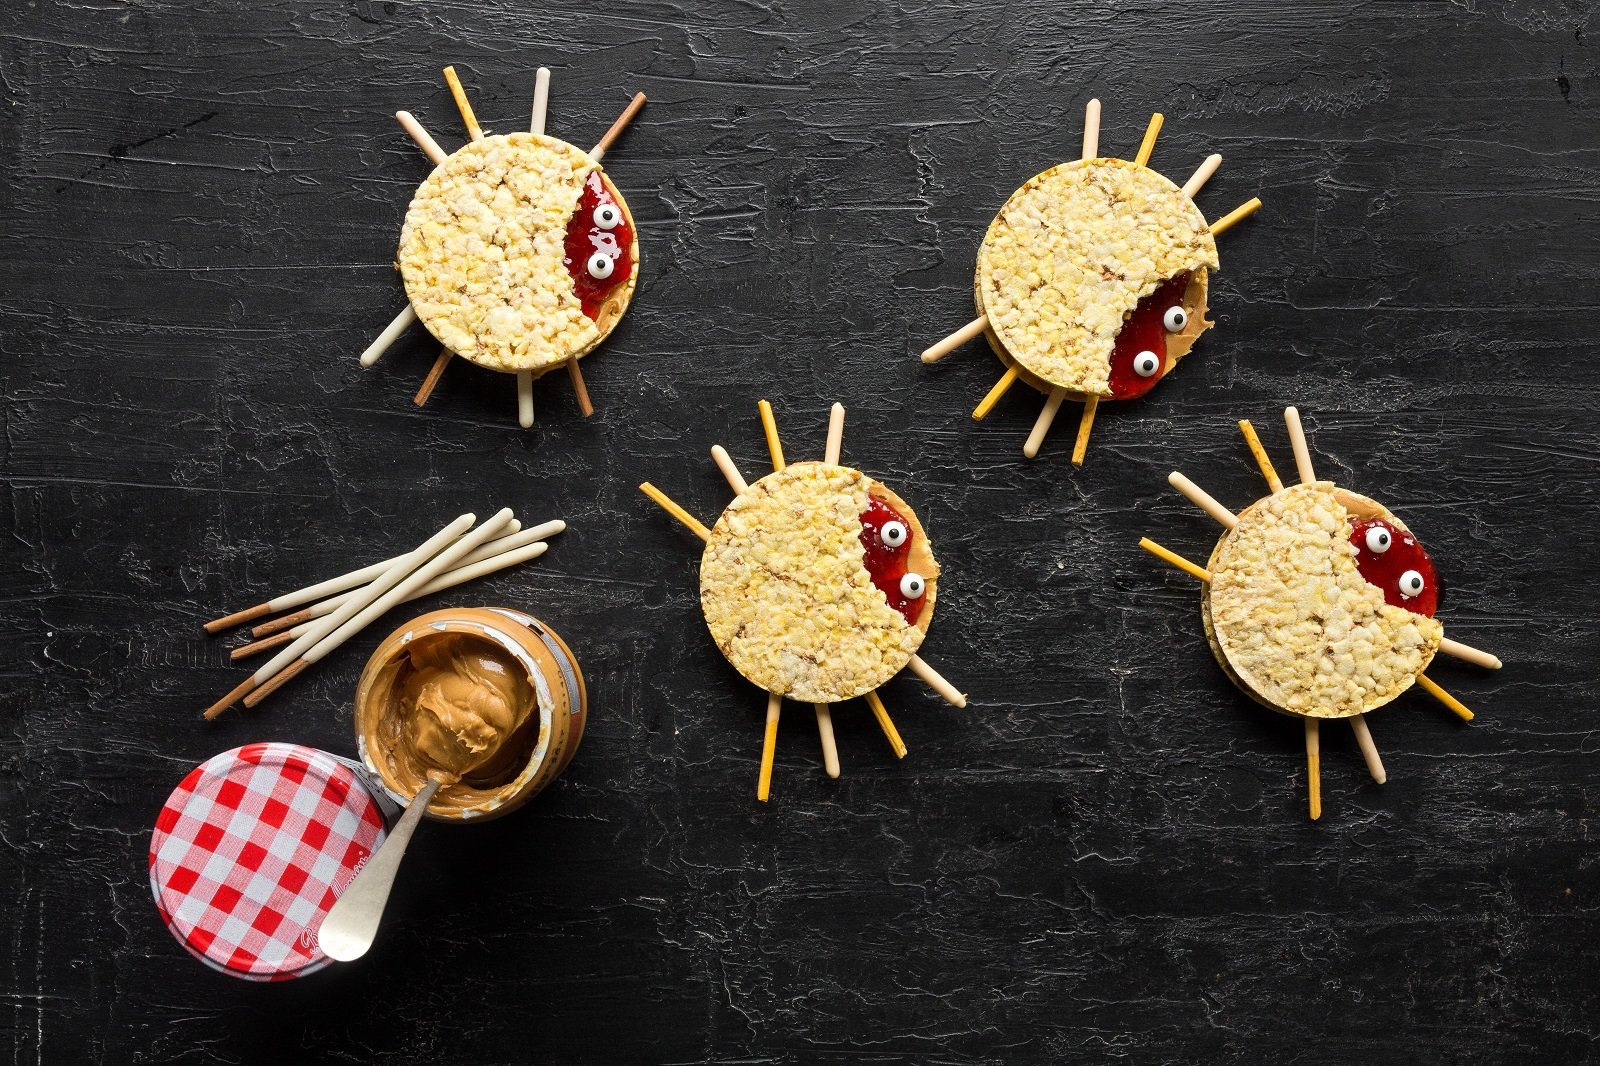 Peanut butter (or nut butter) and jam CORN THINS slices in the shape of spiders